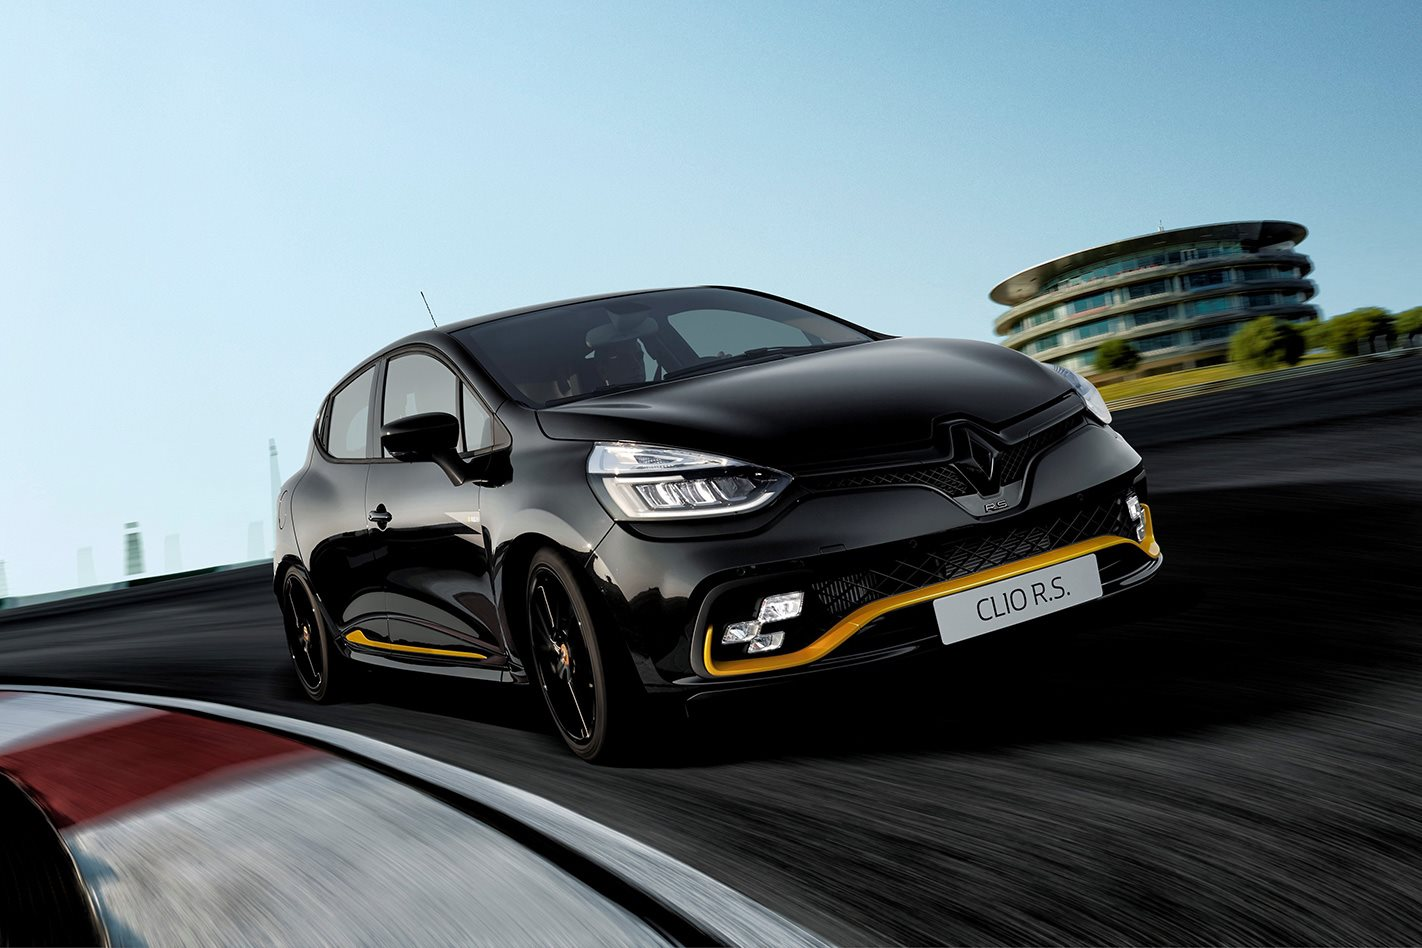 renault announces rare clio rs 18 ahead of f1 opener. Black Bedroom Furniture Sets. Home Design Ideas